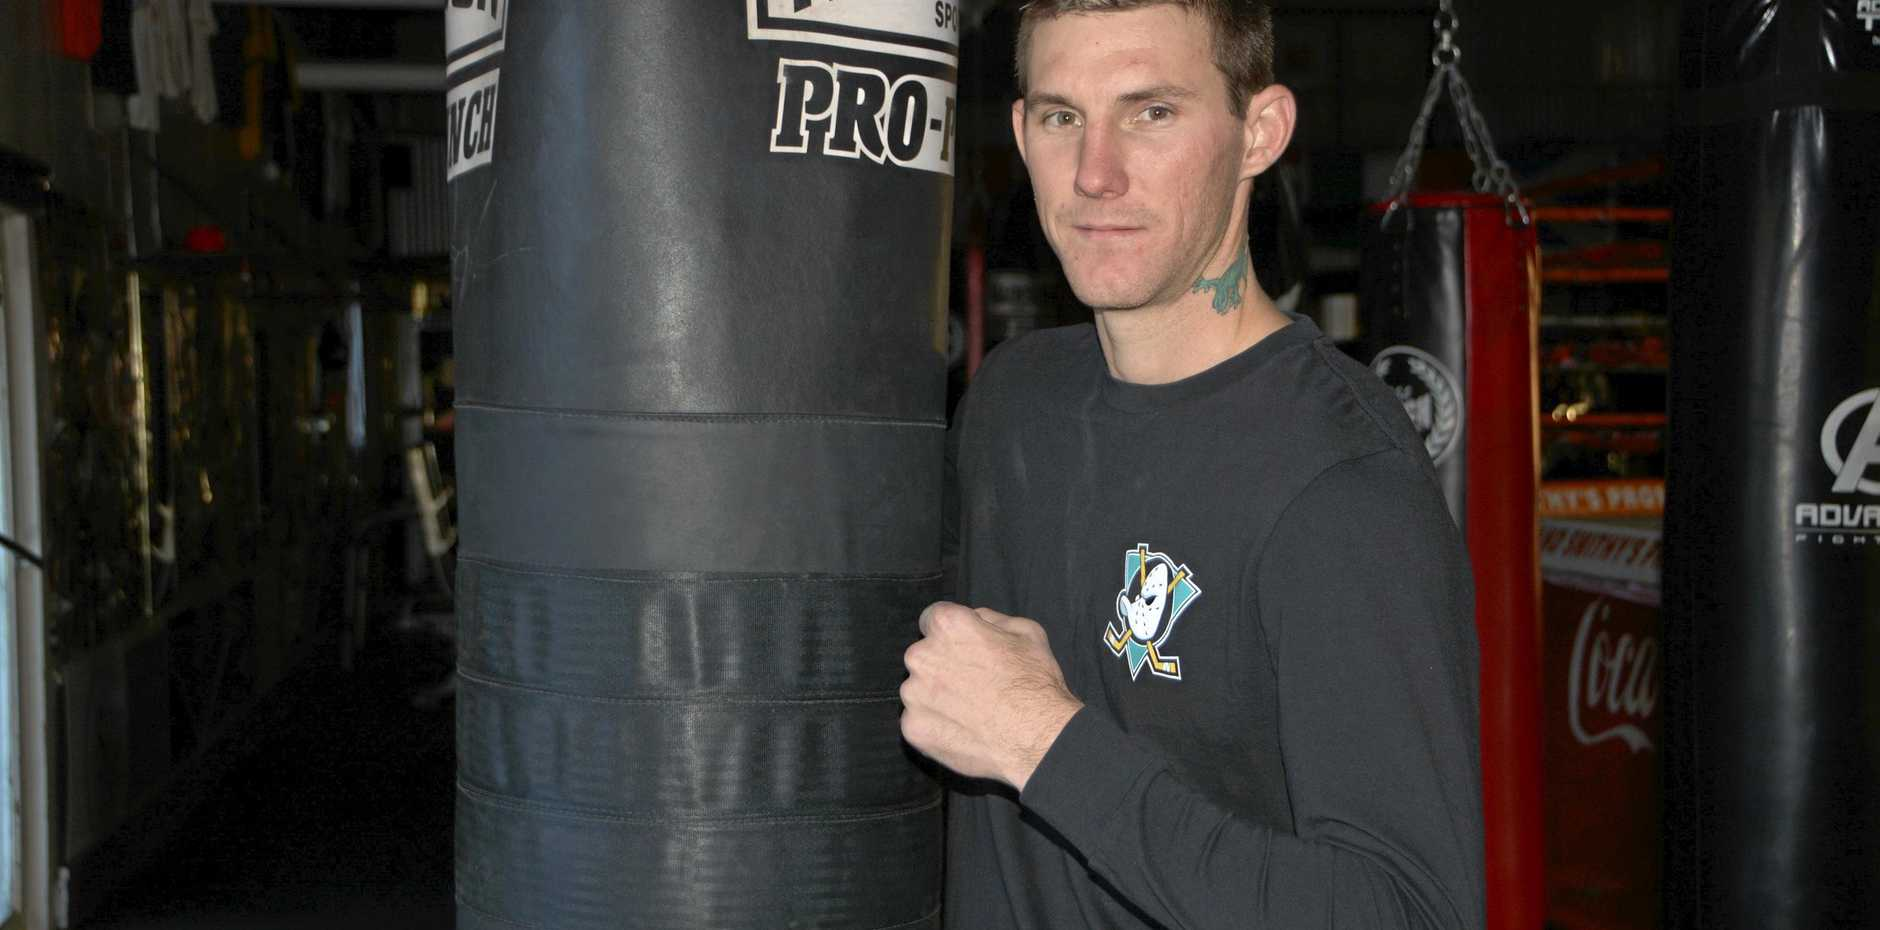 Toowoomba boxer Brent Moore had his Queensland middleweight championship bout on Saturday night end in disappointment.